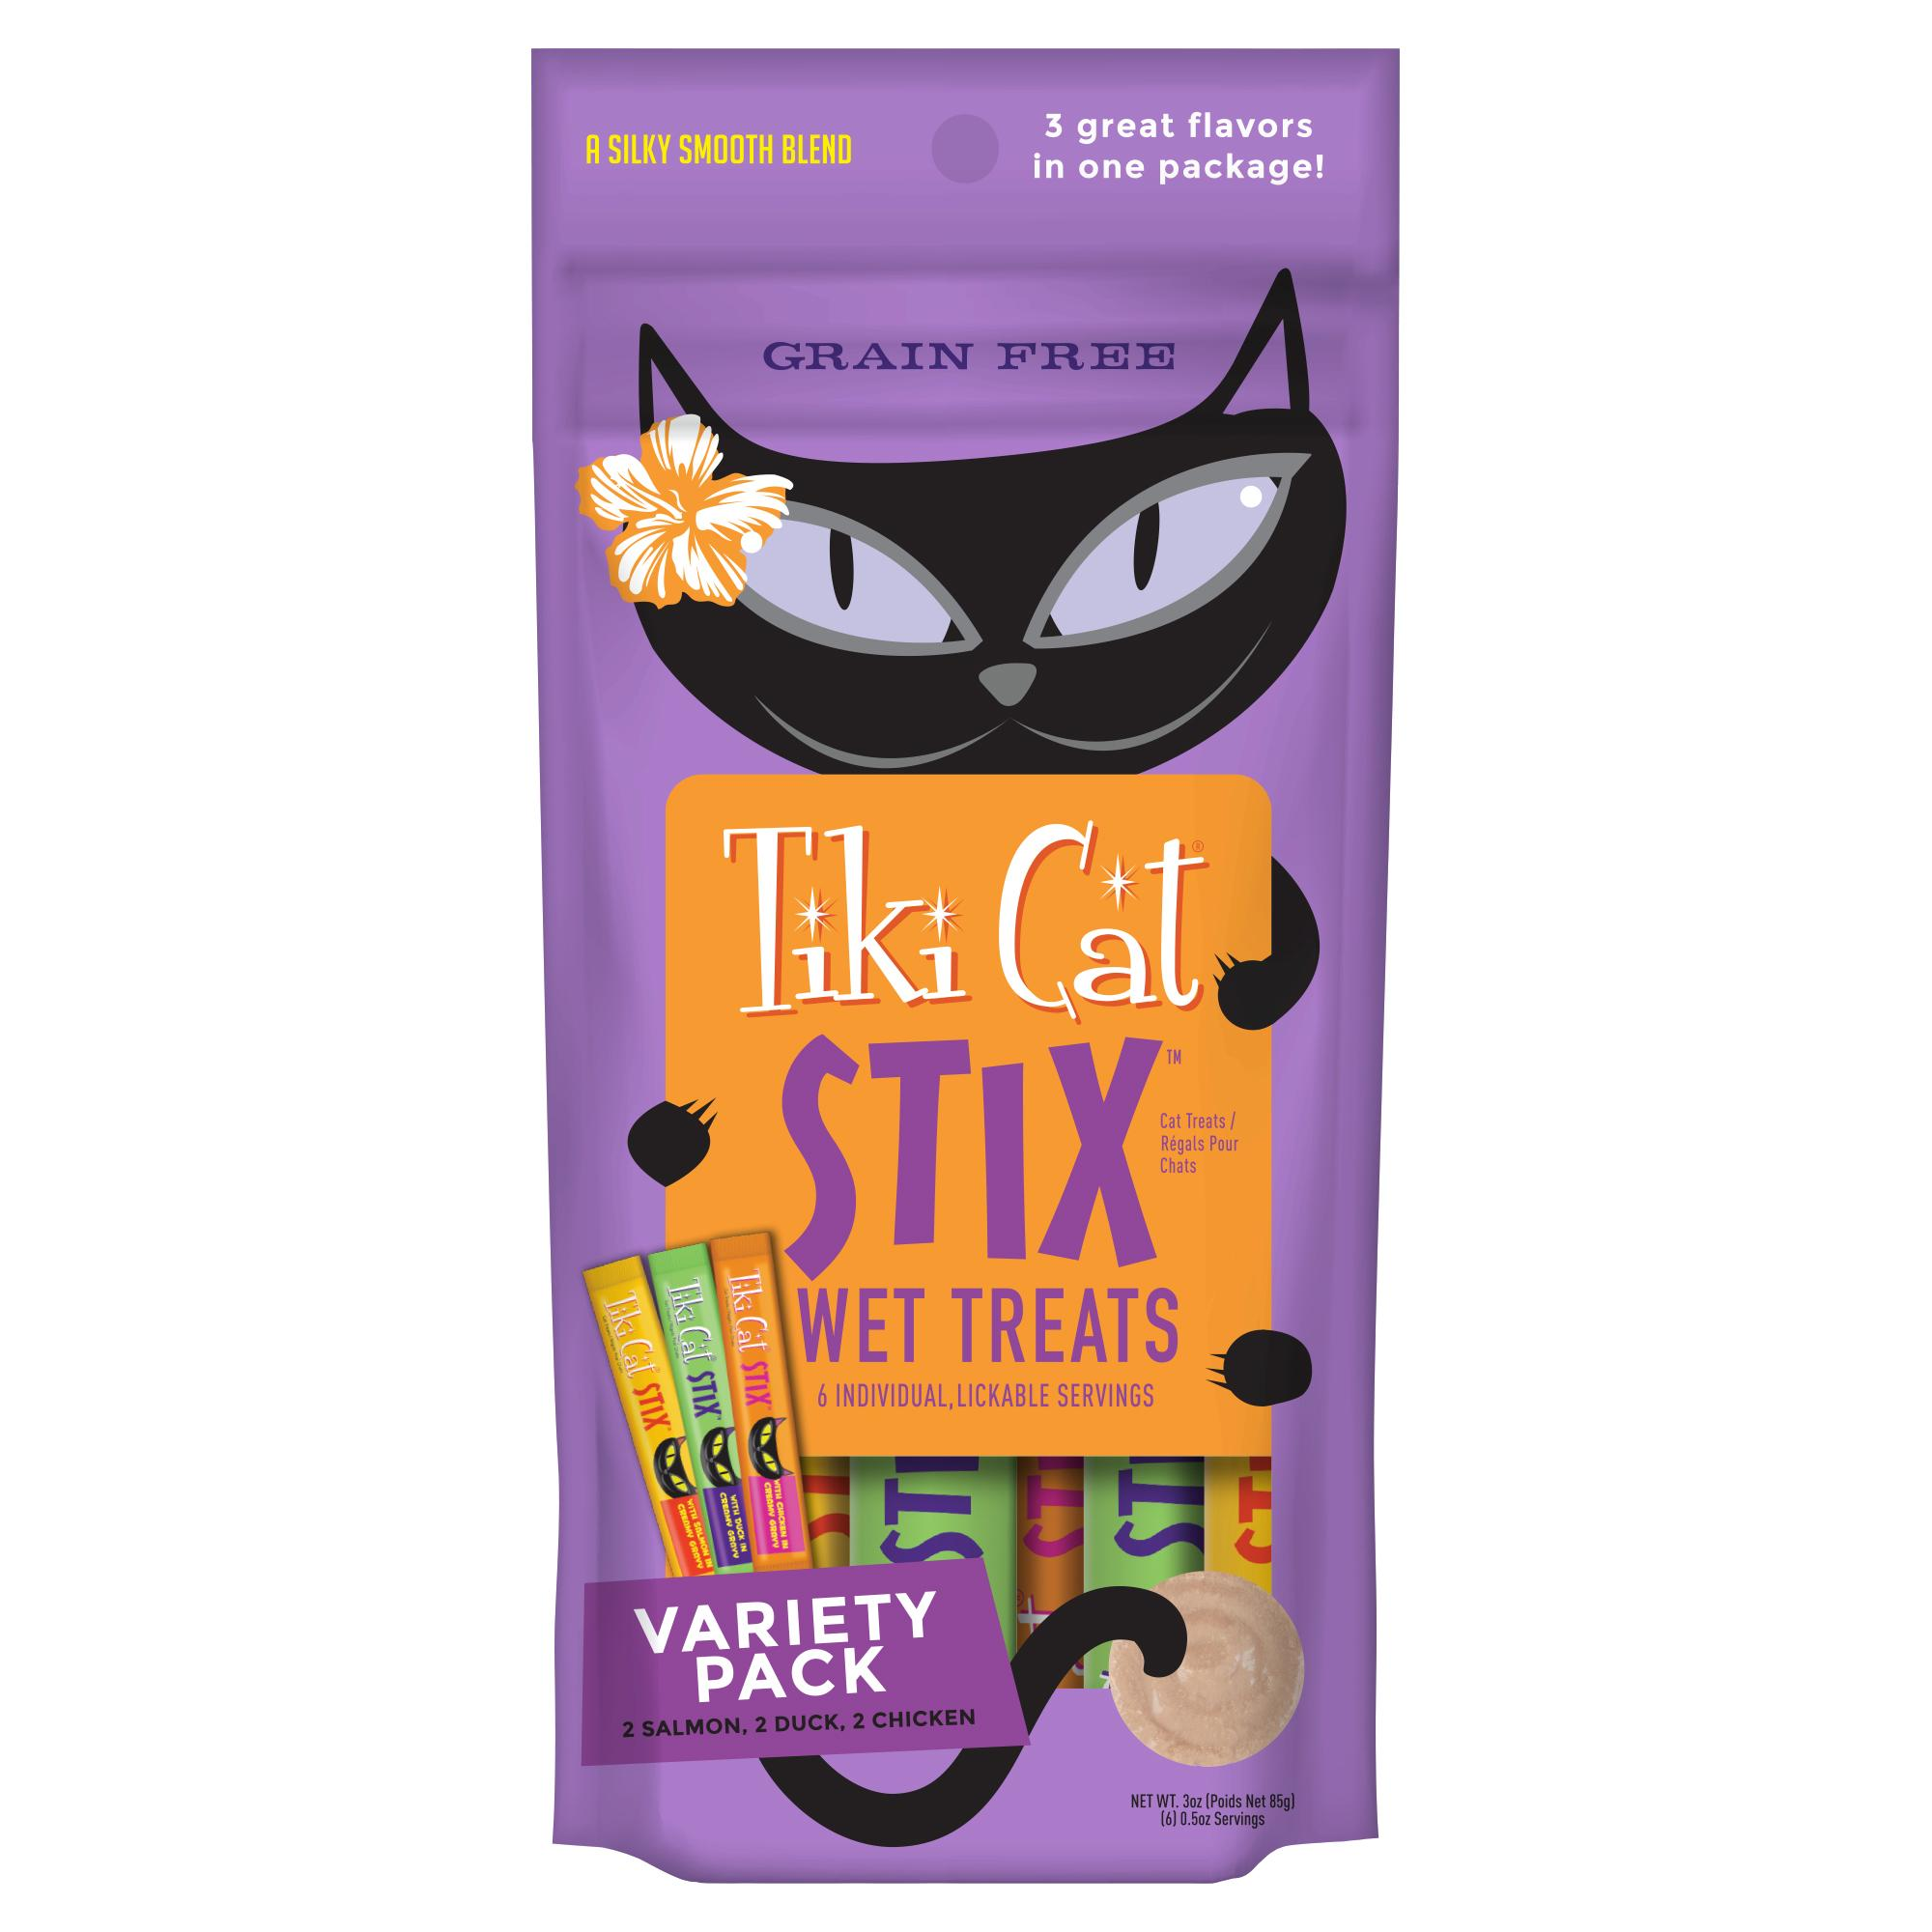 Tiki Cat Stix Variety Pack Mousse Cat Treat, 6-pack Size: 6-pack